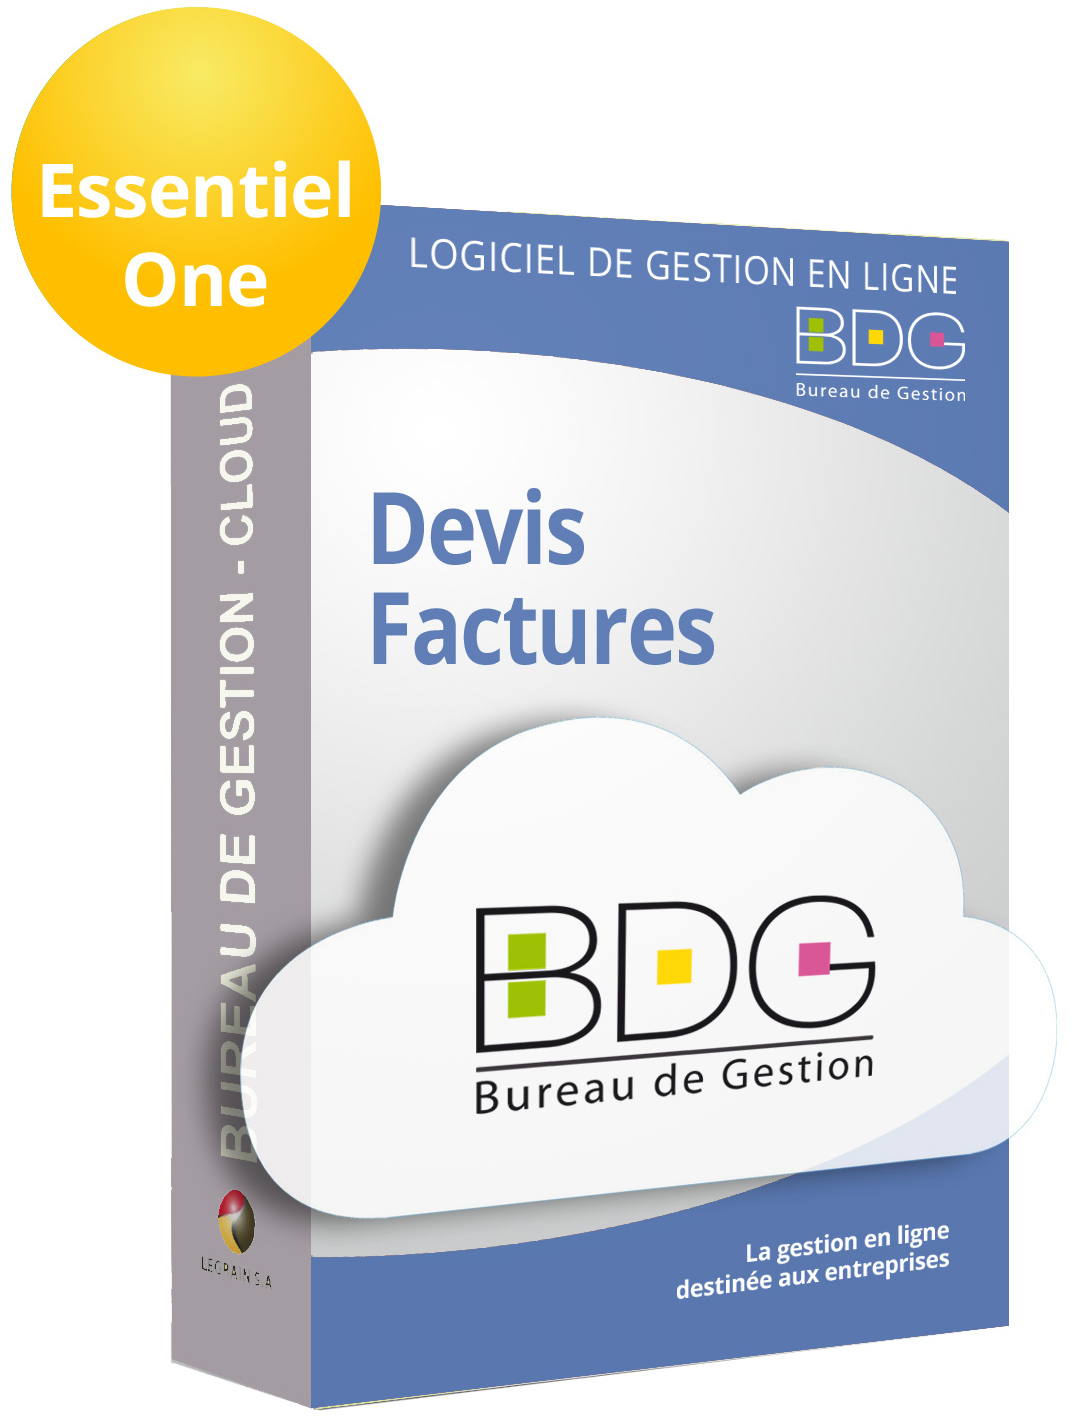 Bureau de Gestion Cloud - devis factures en ligne